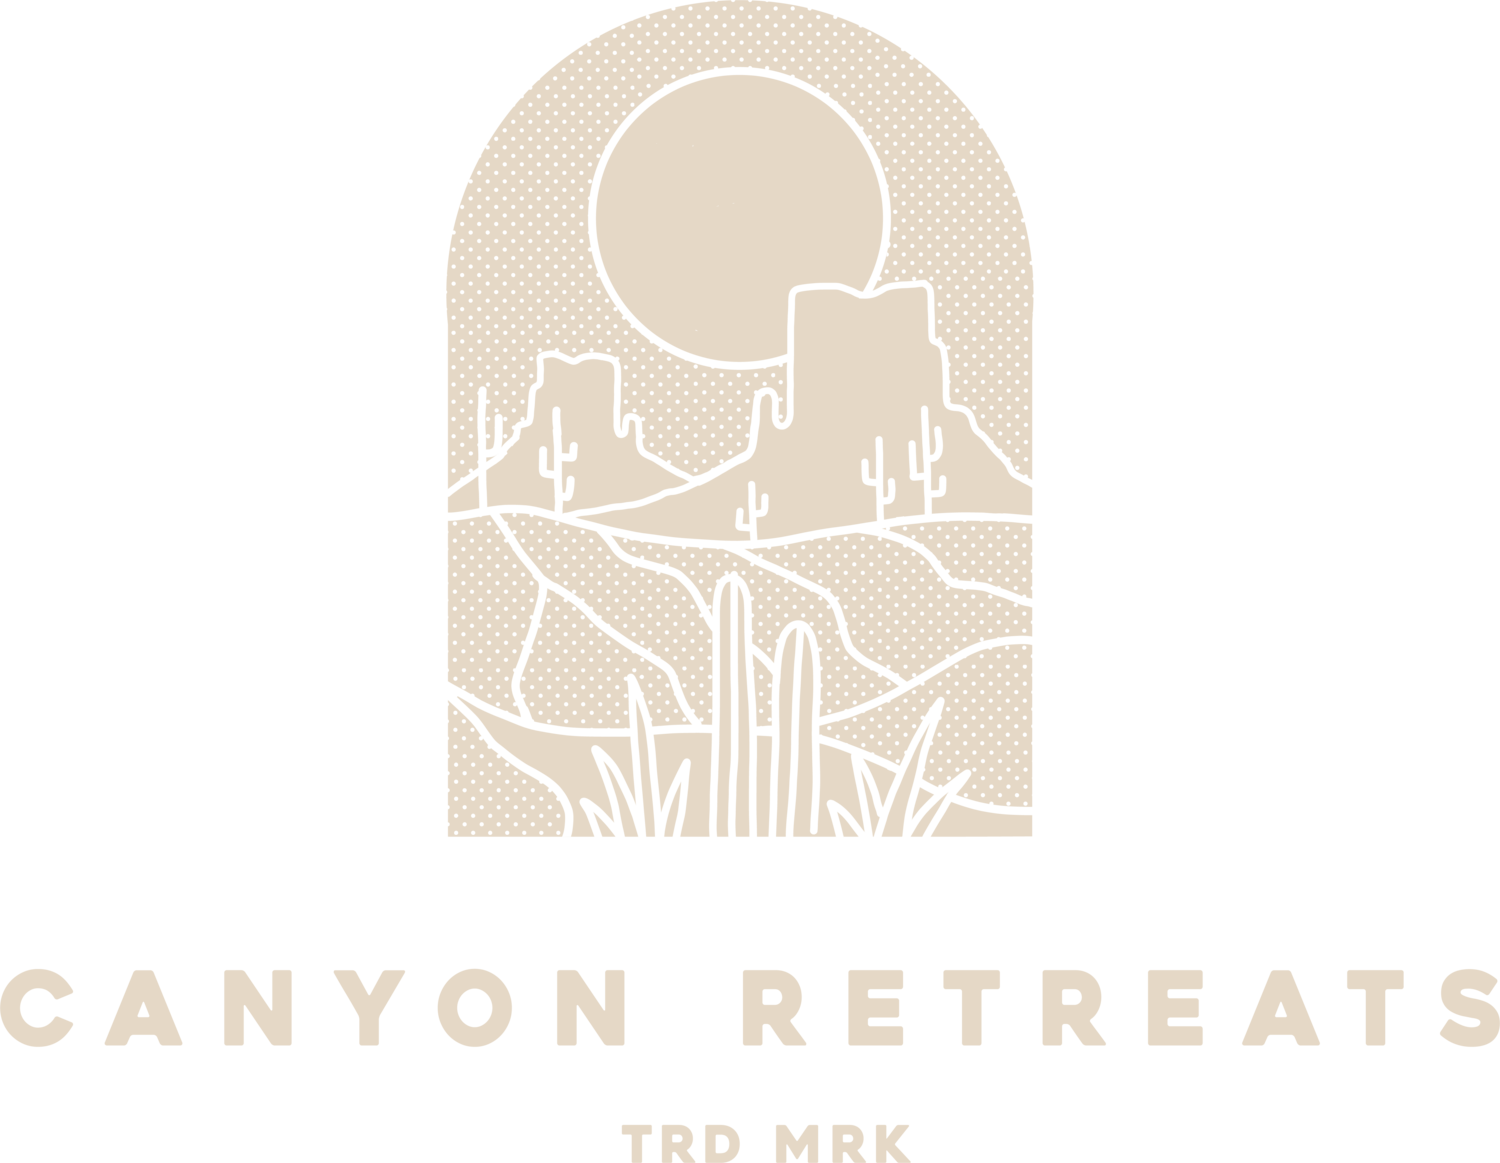 Canyon Retreats